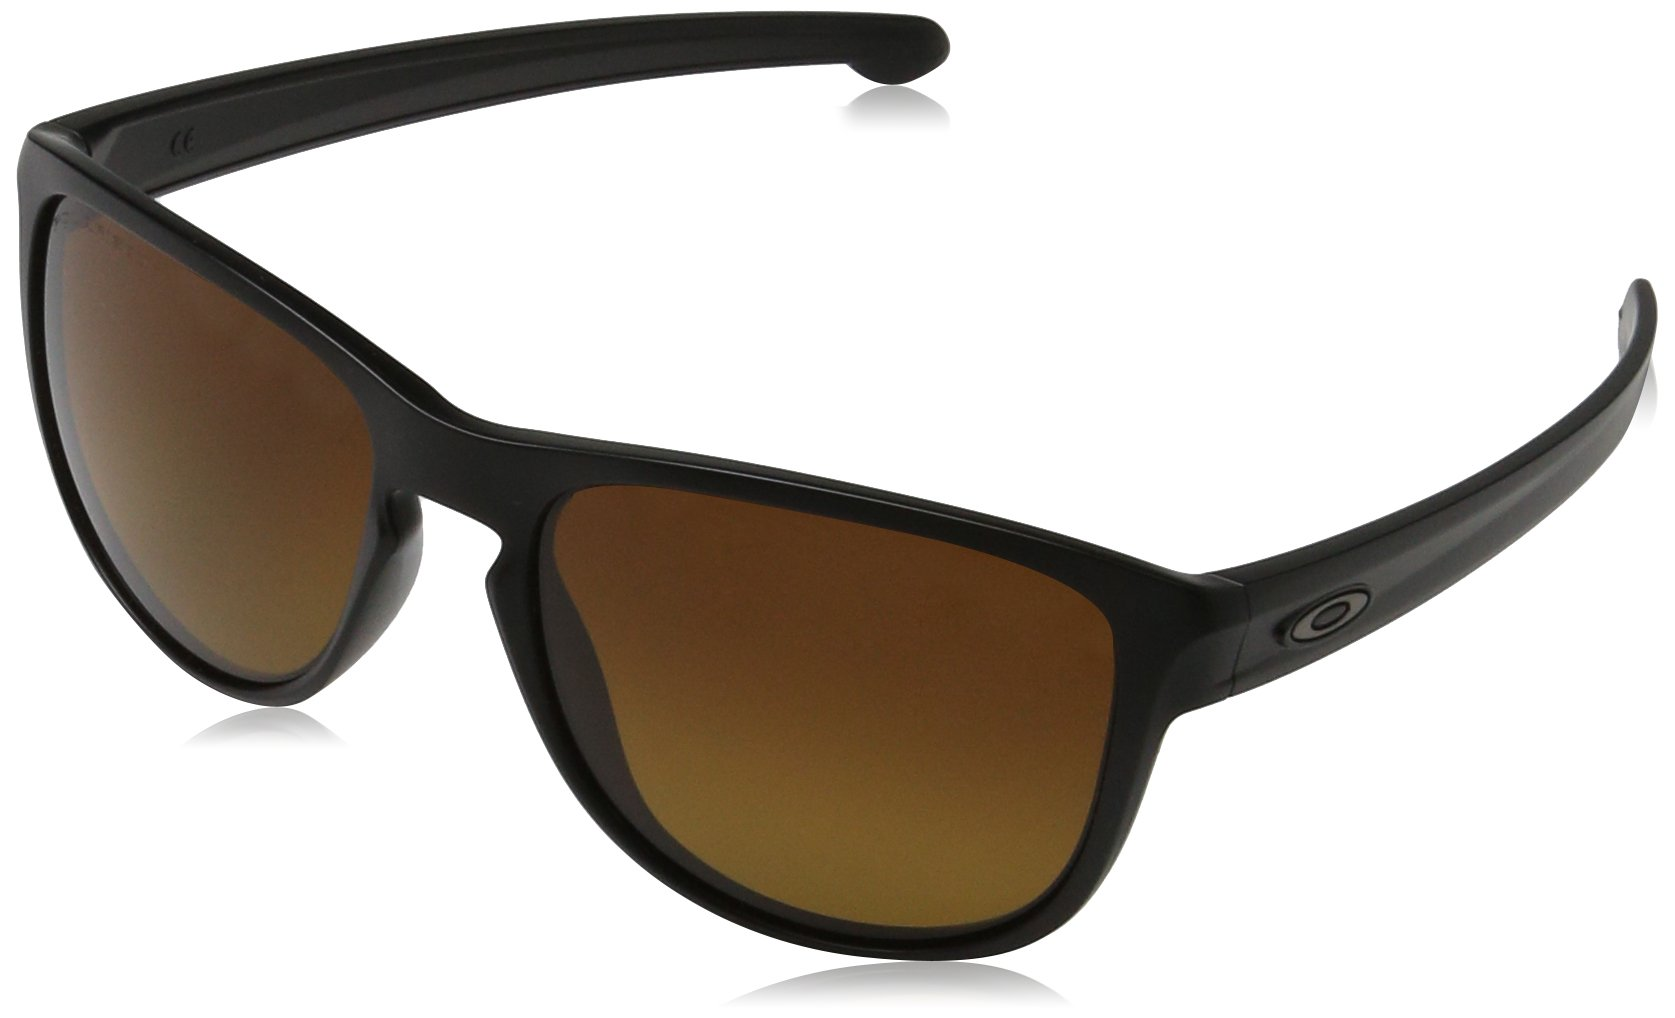 Oakley Men's Sliver R Rectangular Sunglasses, Matte Black w/Grey, 57 mm